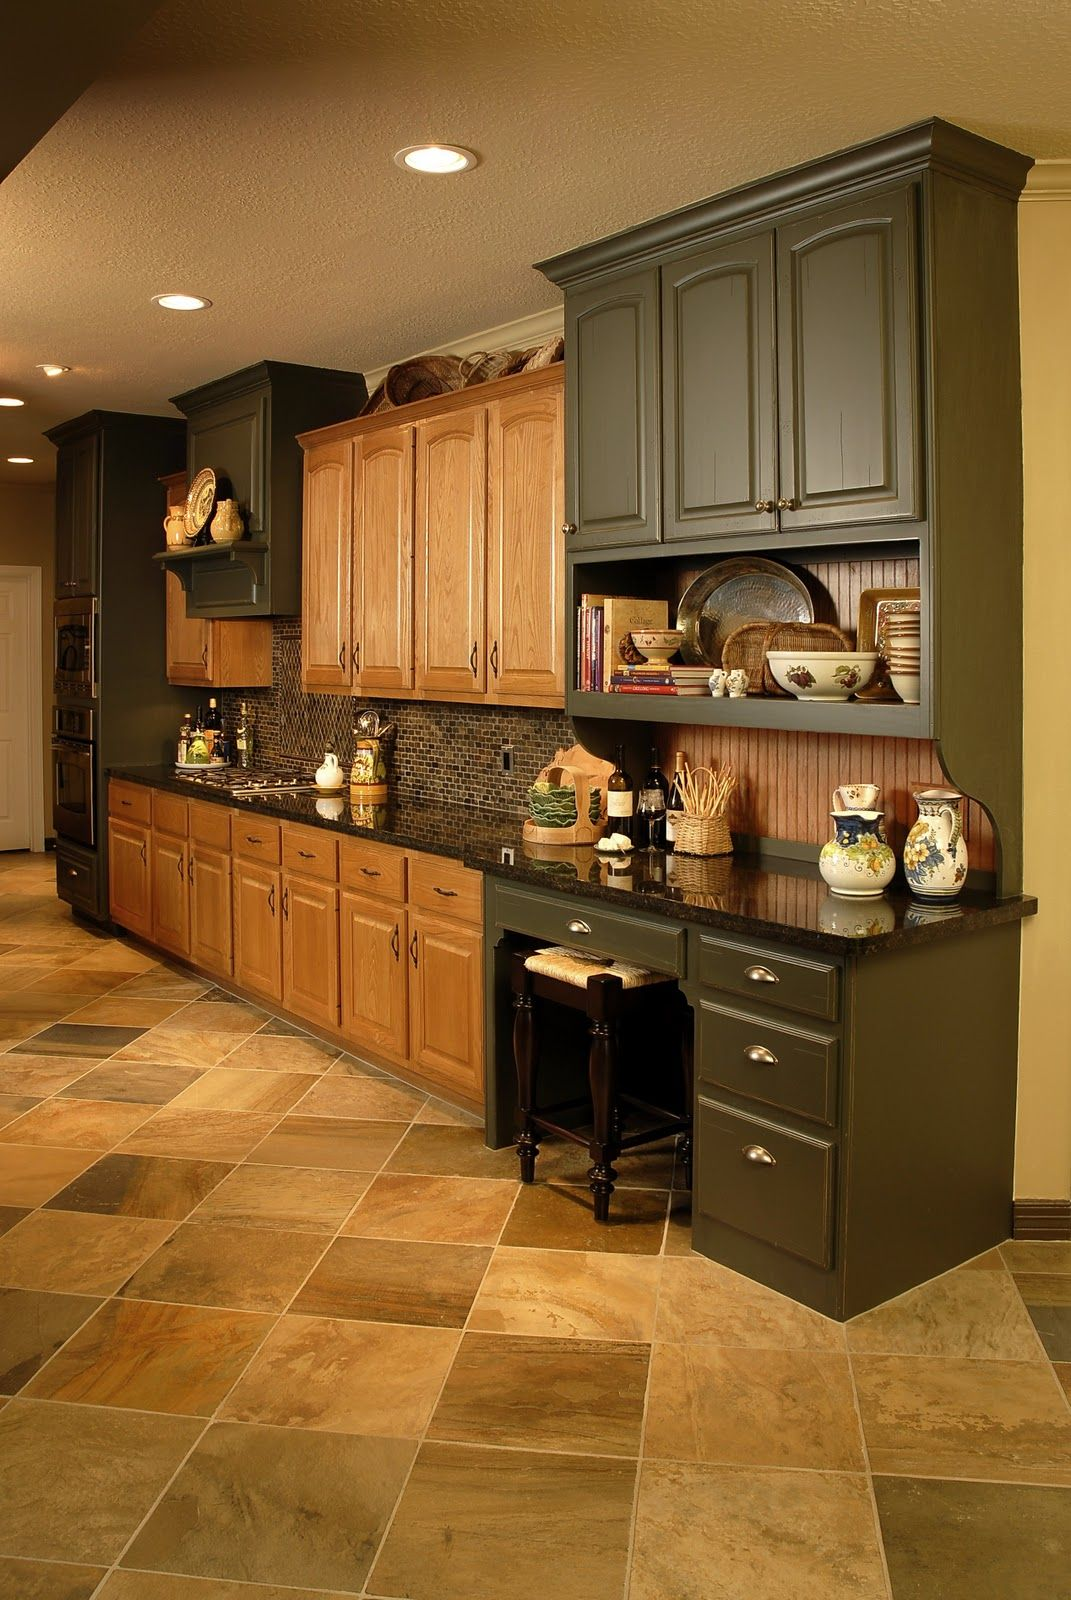 Oak Cabinets Kitchen Design Design In The Woods What To Do With Oak Cabinets